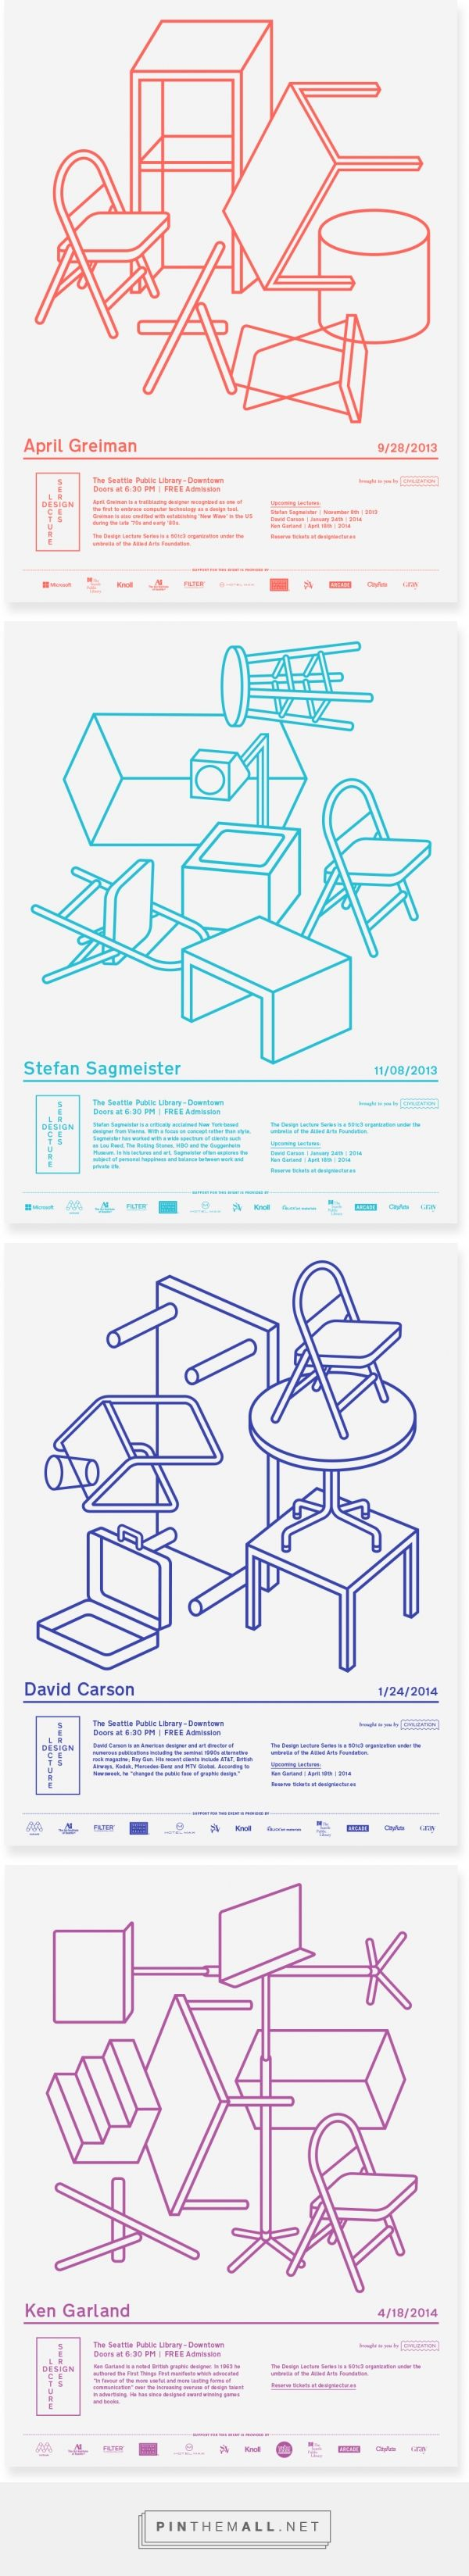 Civilization — A Design Practice — Design Lecture Series - created via https://pinthemall.net